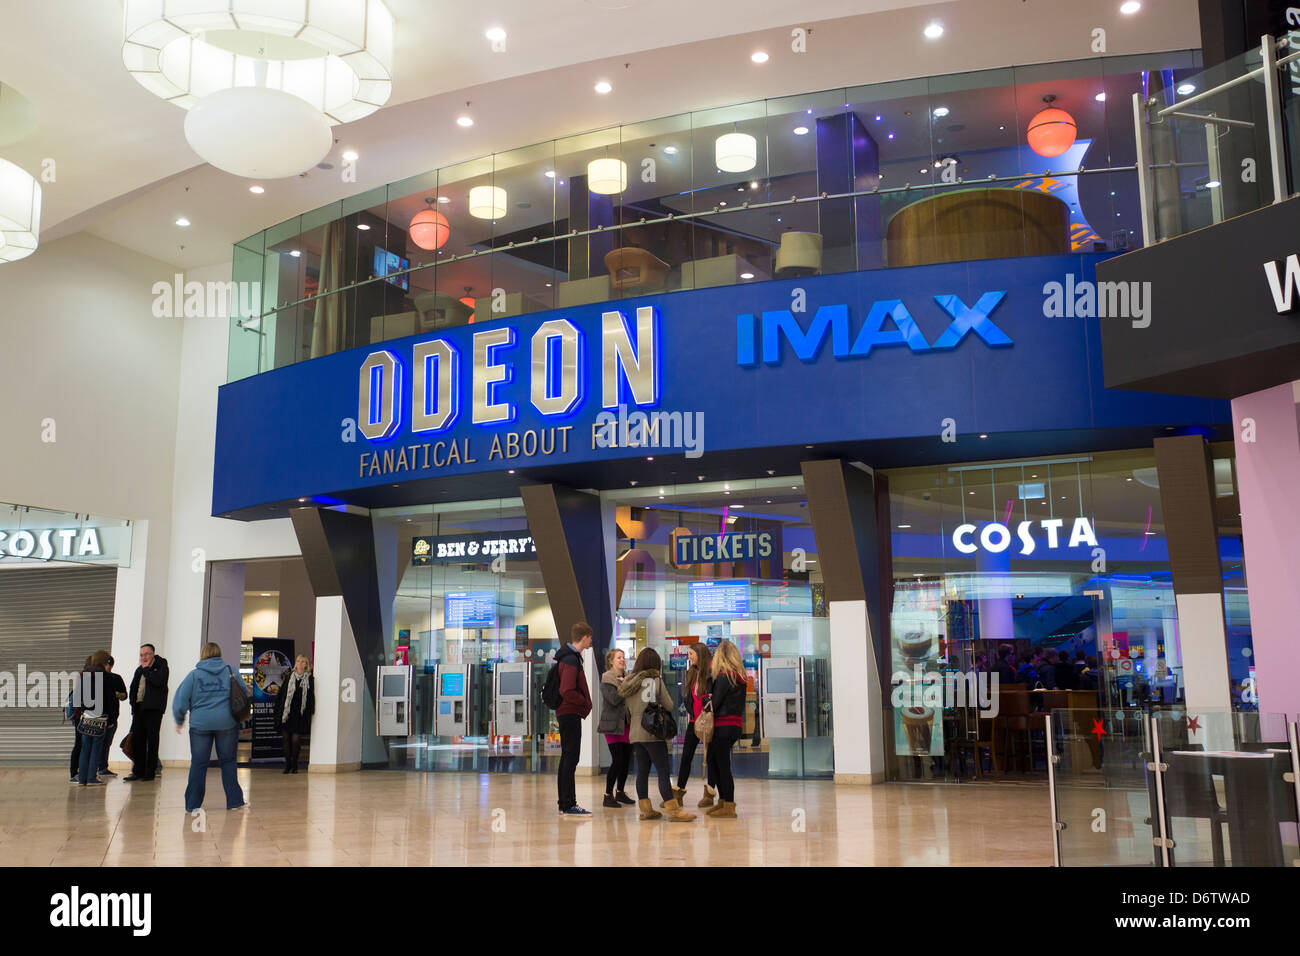 odeon imax cinema at the metrocentre stock photo royalty